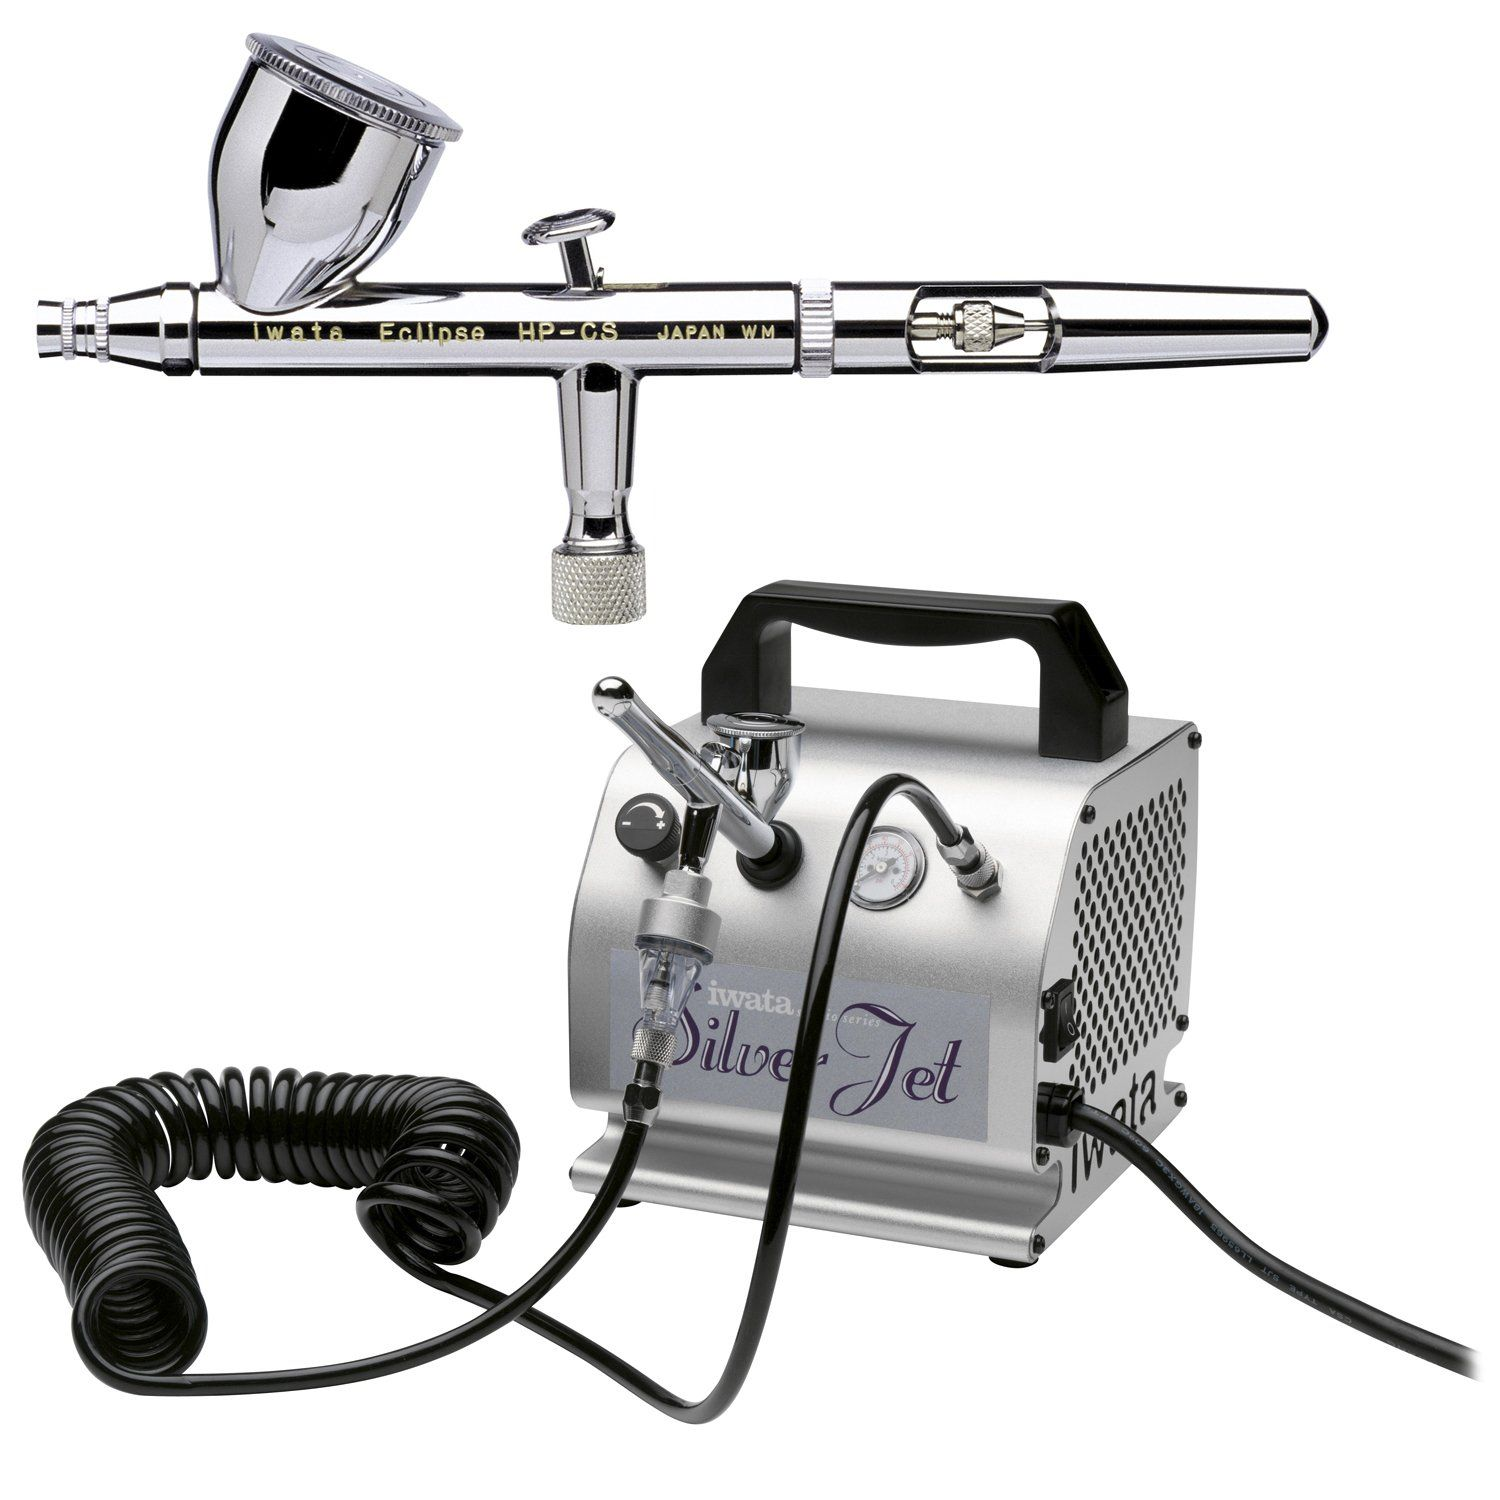 Iwata Eclipse HPCS Airbrushing System with